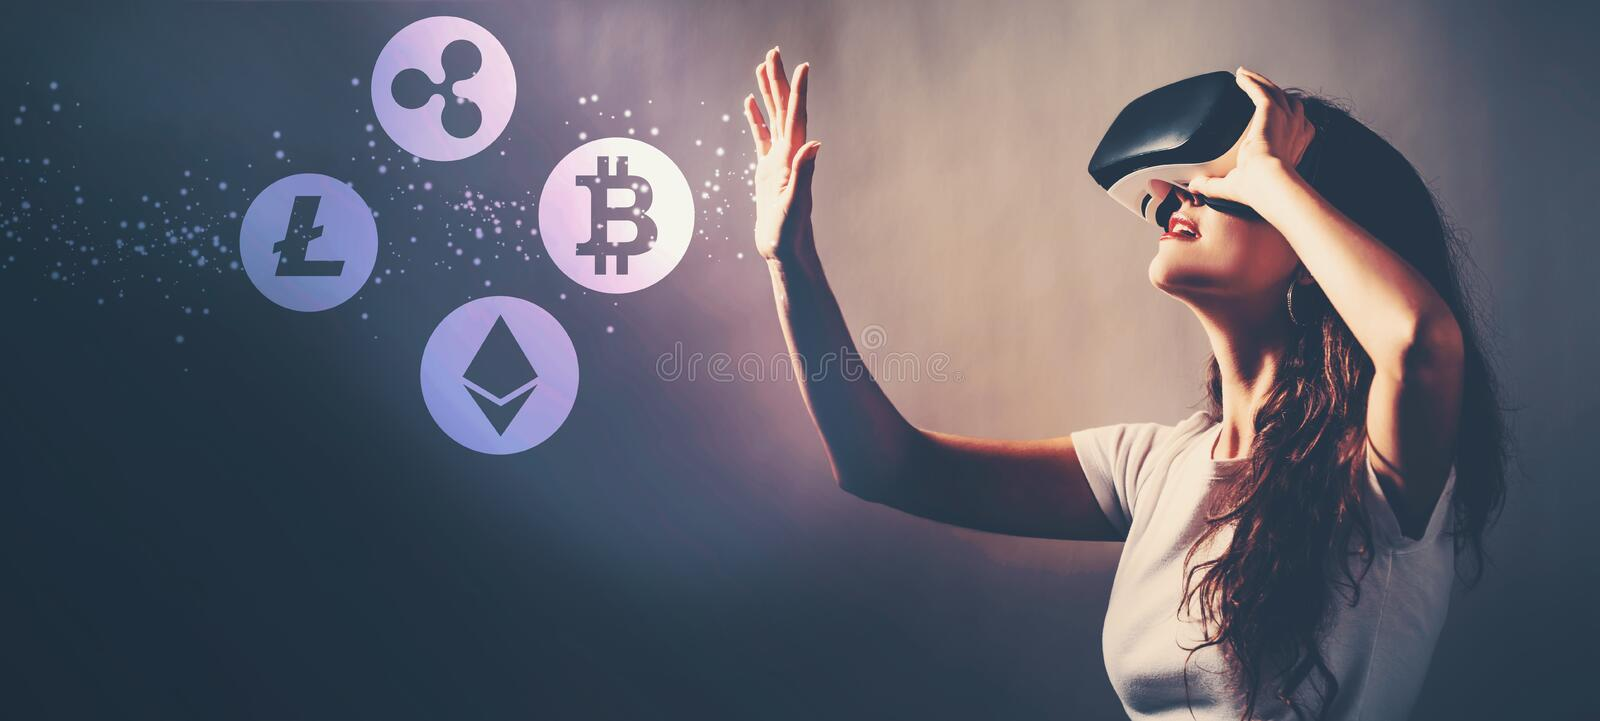 Cryptocurrency with woman using a virtual reality headset royalty free stock photography